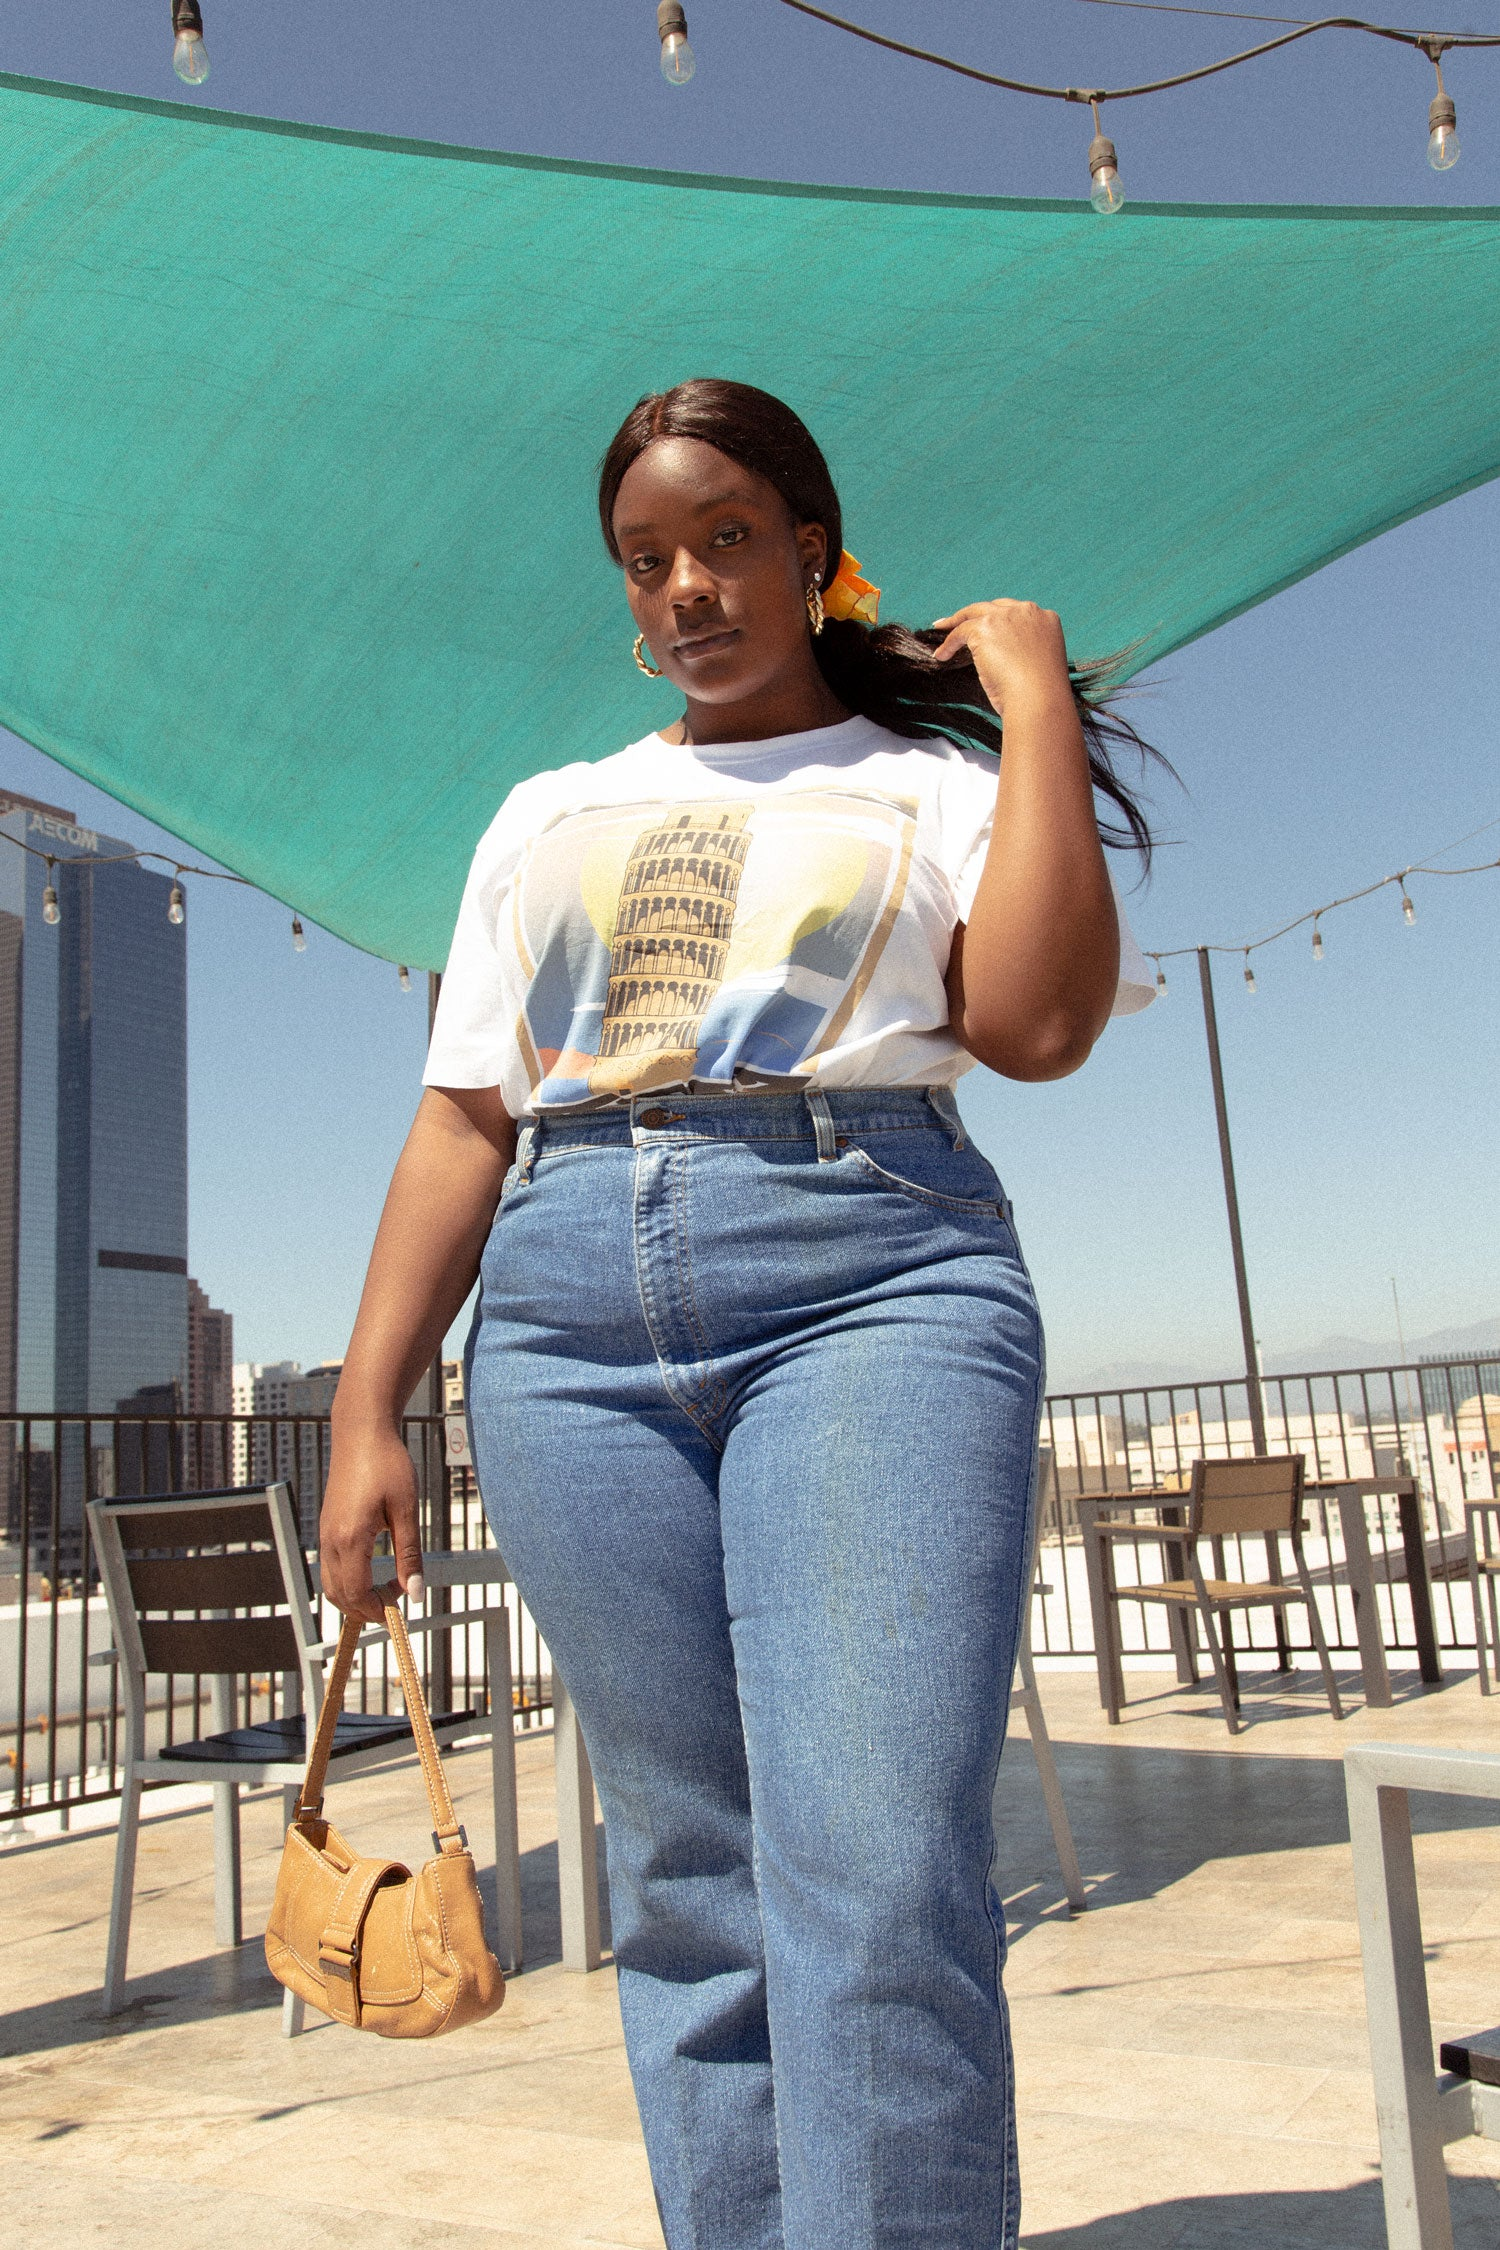 Plus size female model standing on rooftop in downtown Los Angeles.  Wearing vintage Leaning Tower of Pisa t shirt, and high waisted Levi's.